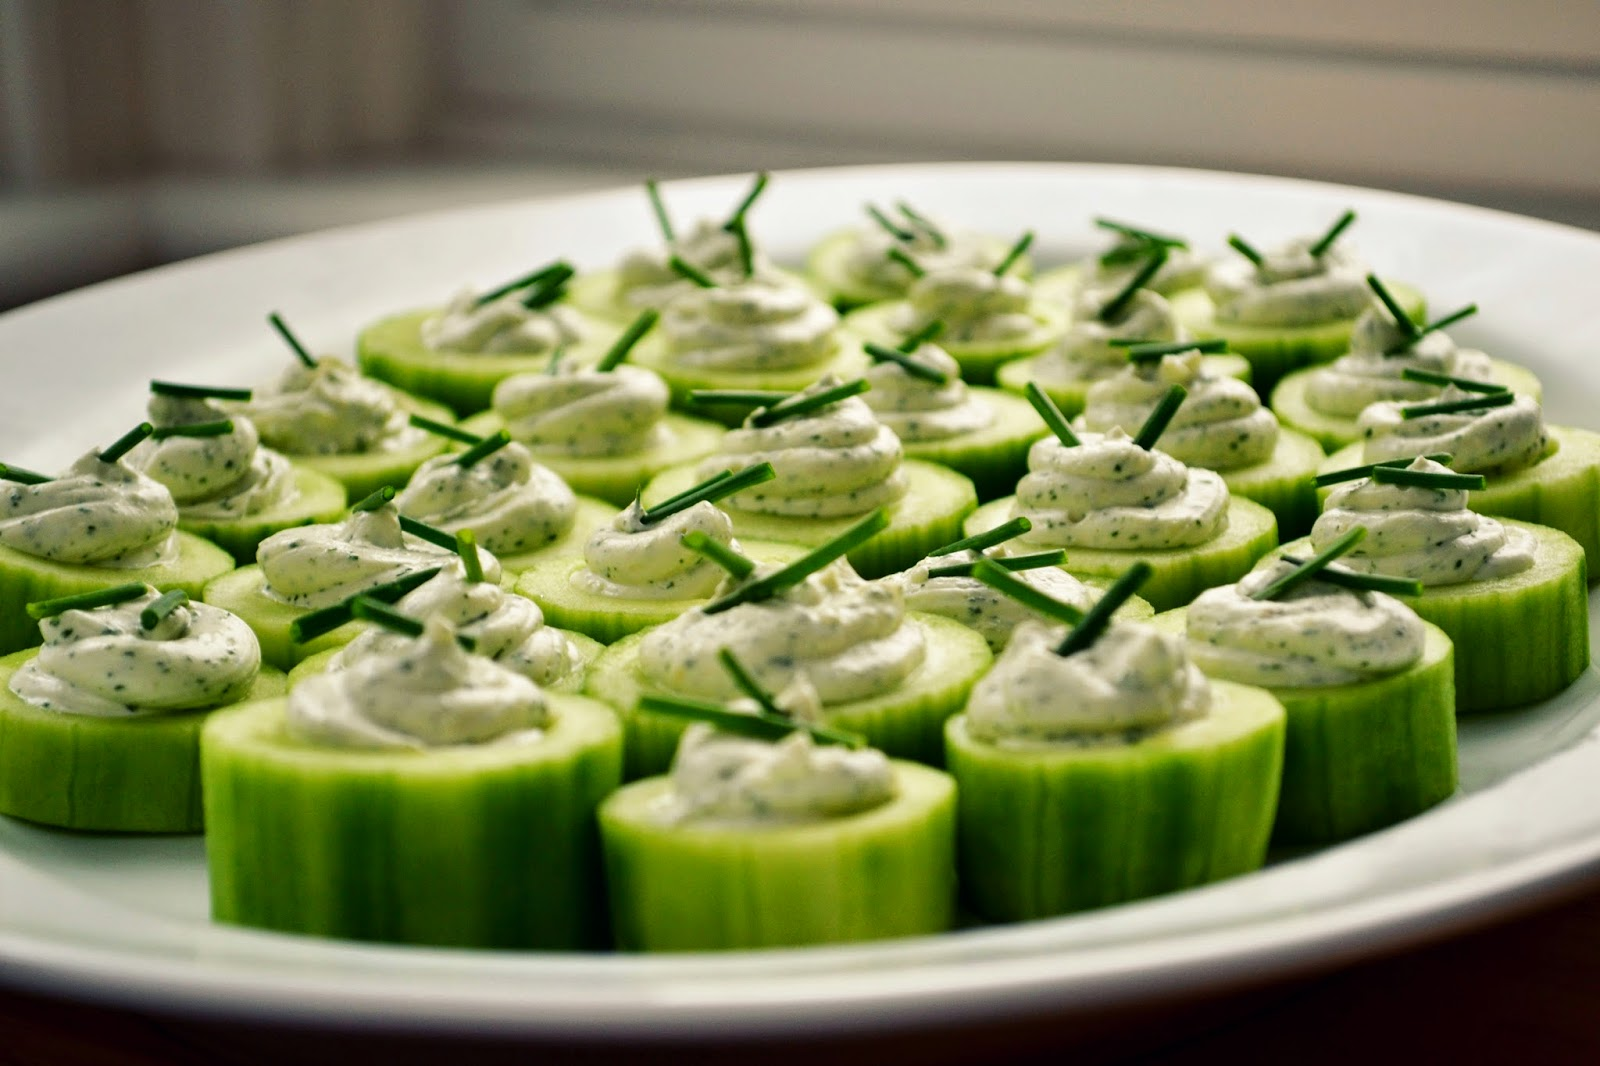 Family feedbag cucumber canap s with 2 cream cheese fillings for Canape fillings